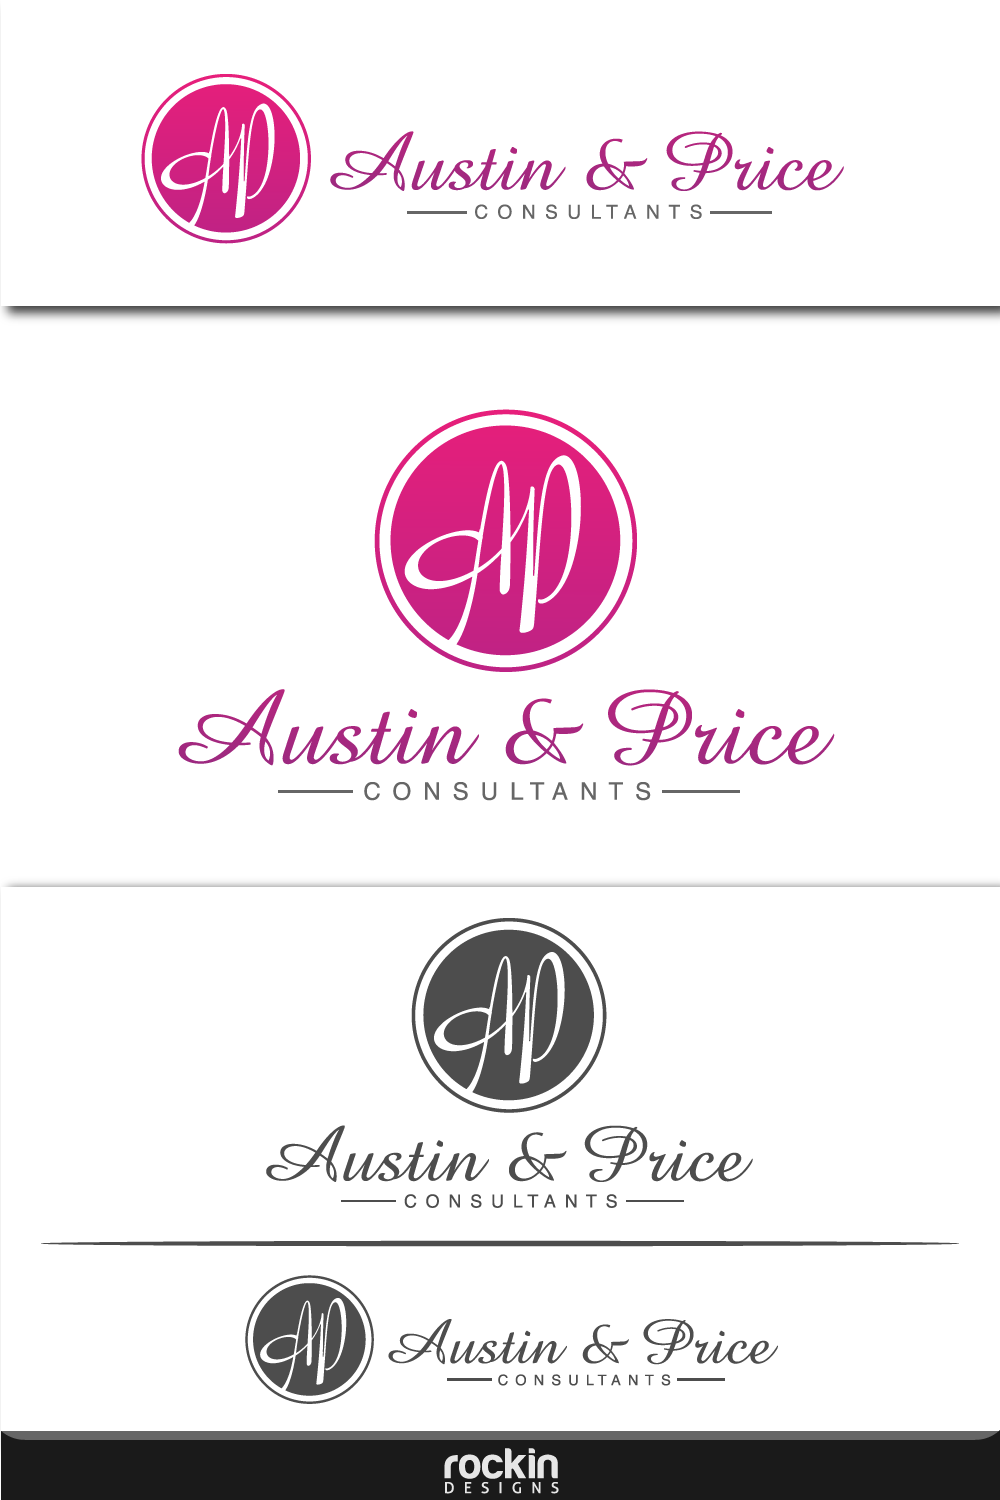 Logo Design by rockin - Entry No. 22 in the Logo Design Contest Artistic Logo Design for Austin Price Advisory.